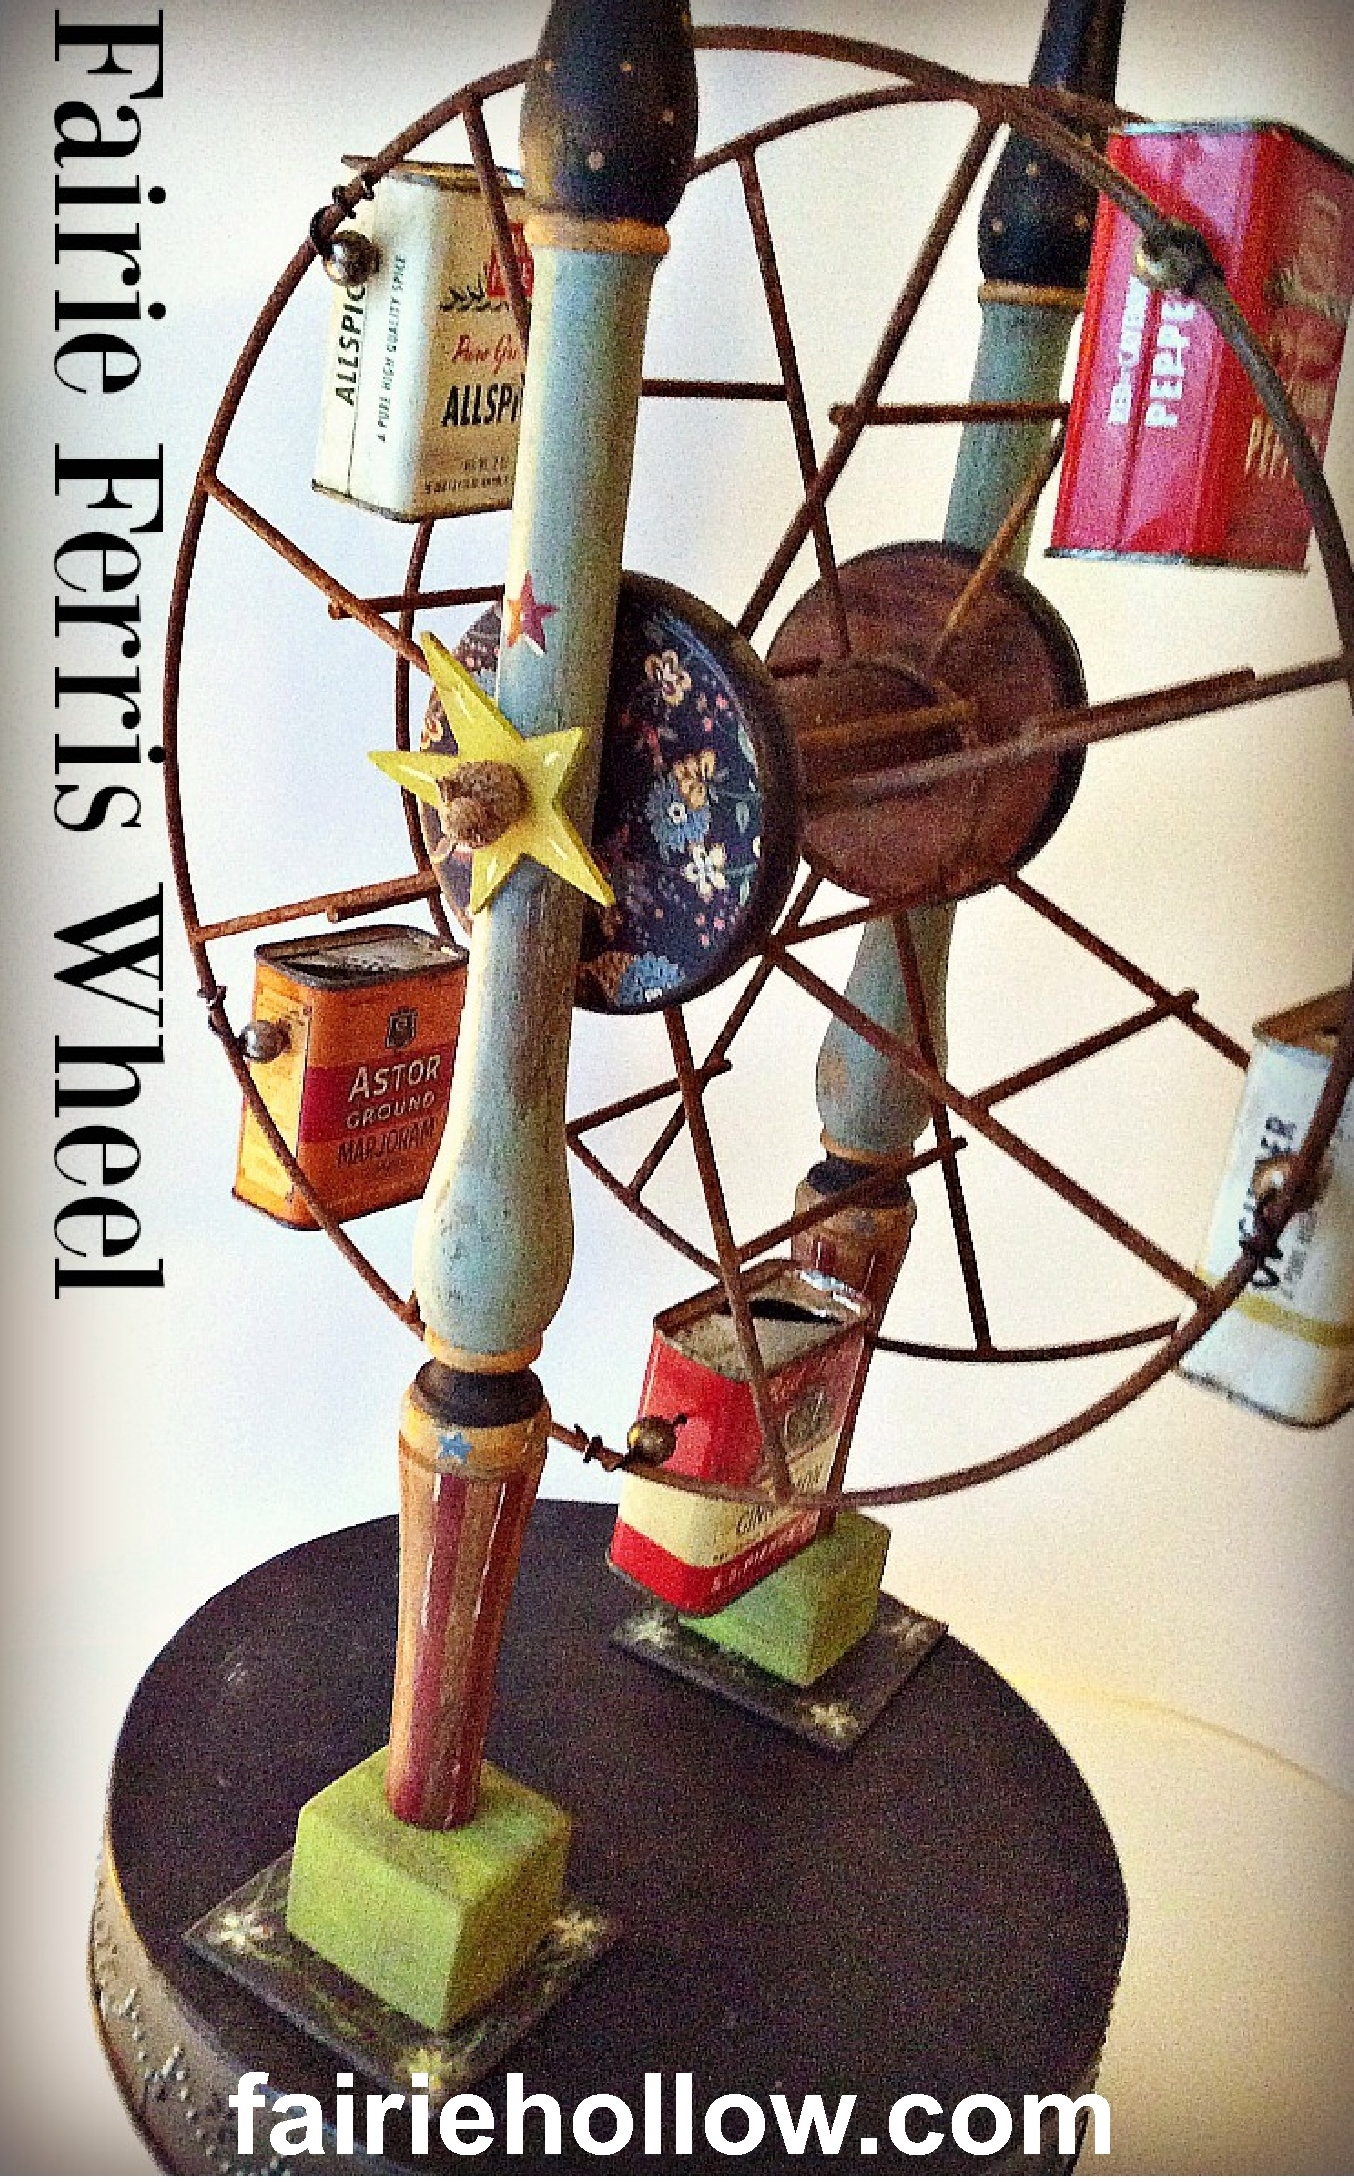 This Fairy Ferris Wheel was fun to make. Find out which vintage items I used to make it| Fairiehollow.com